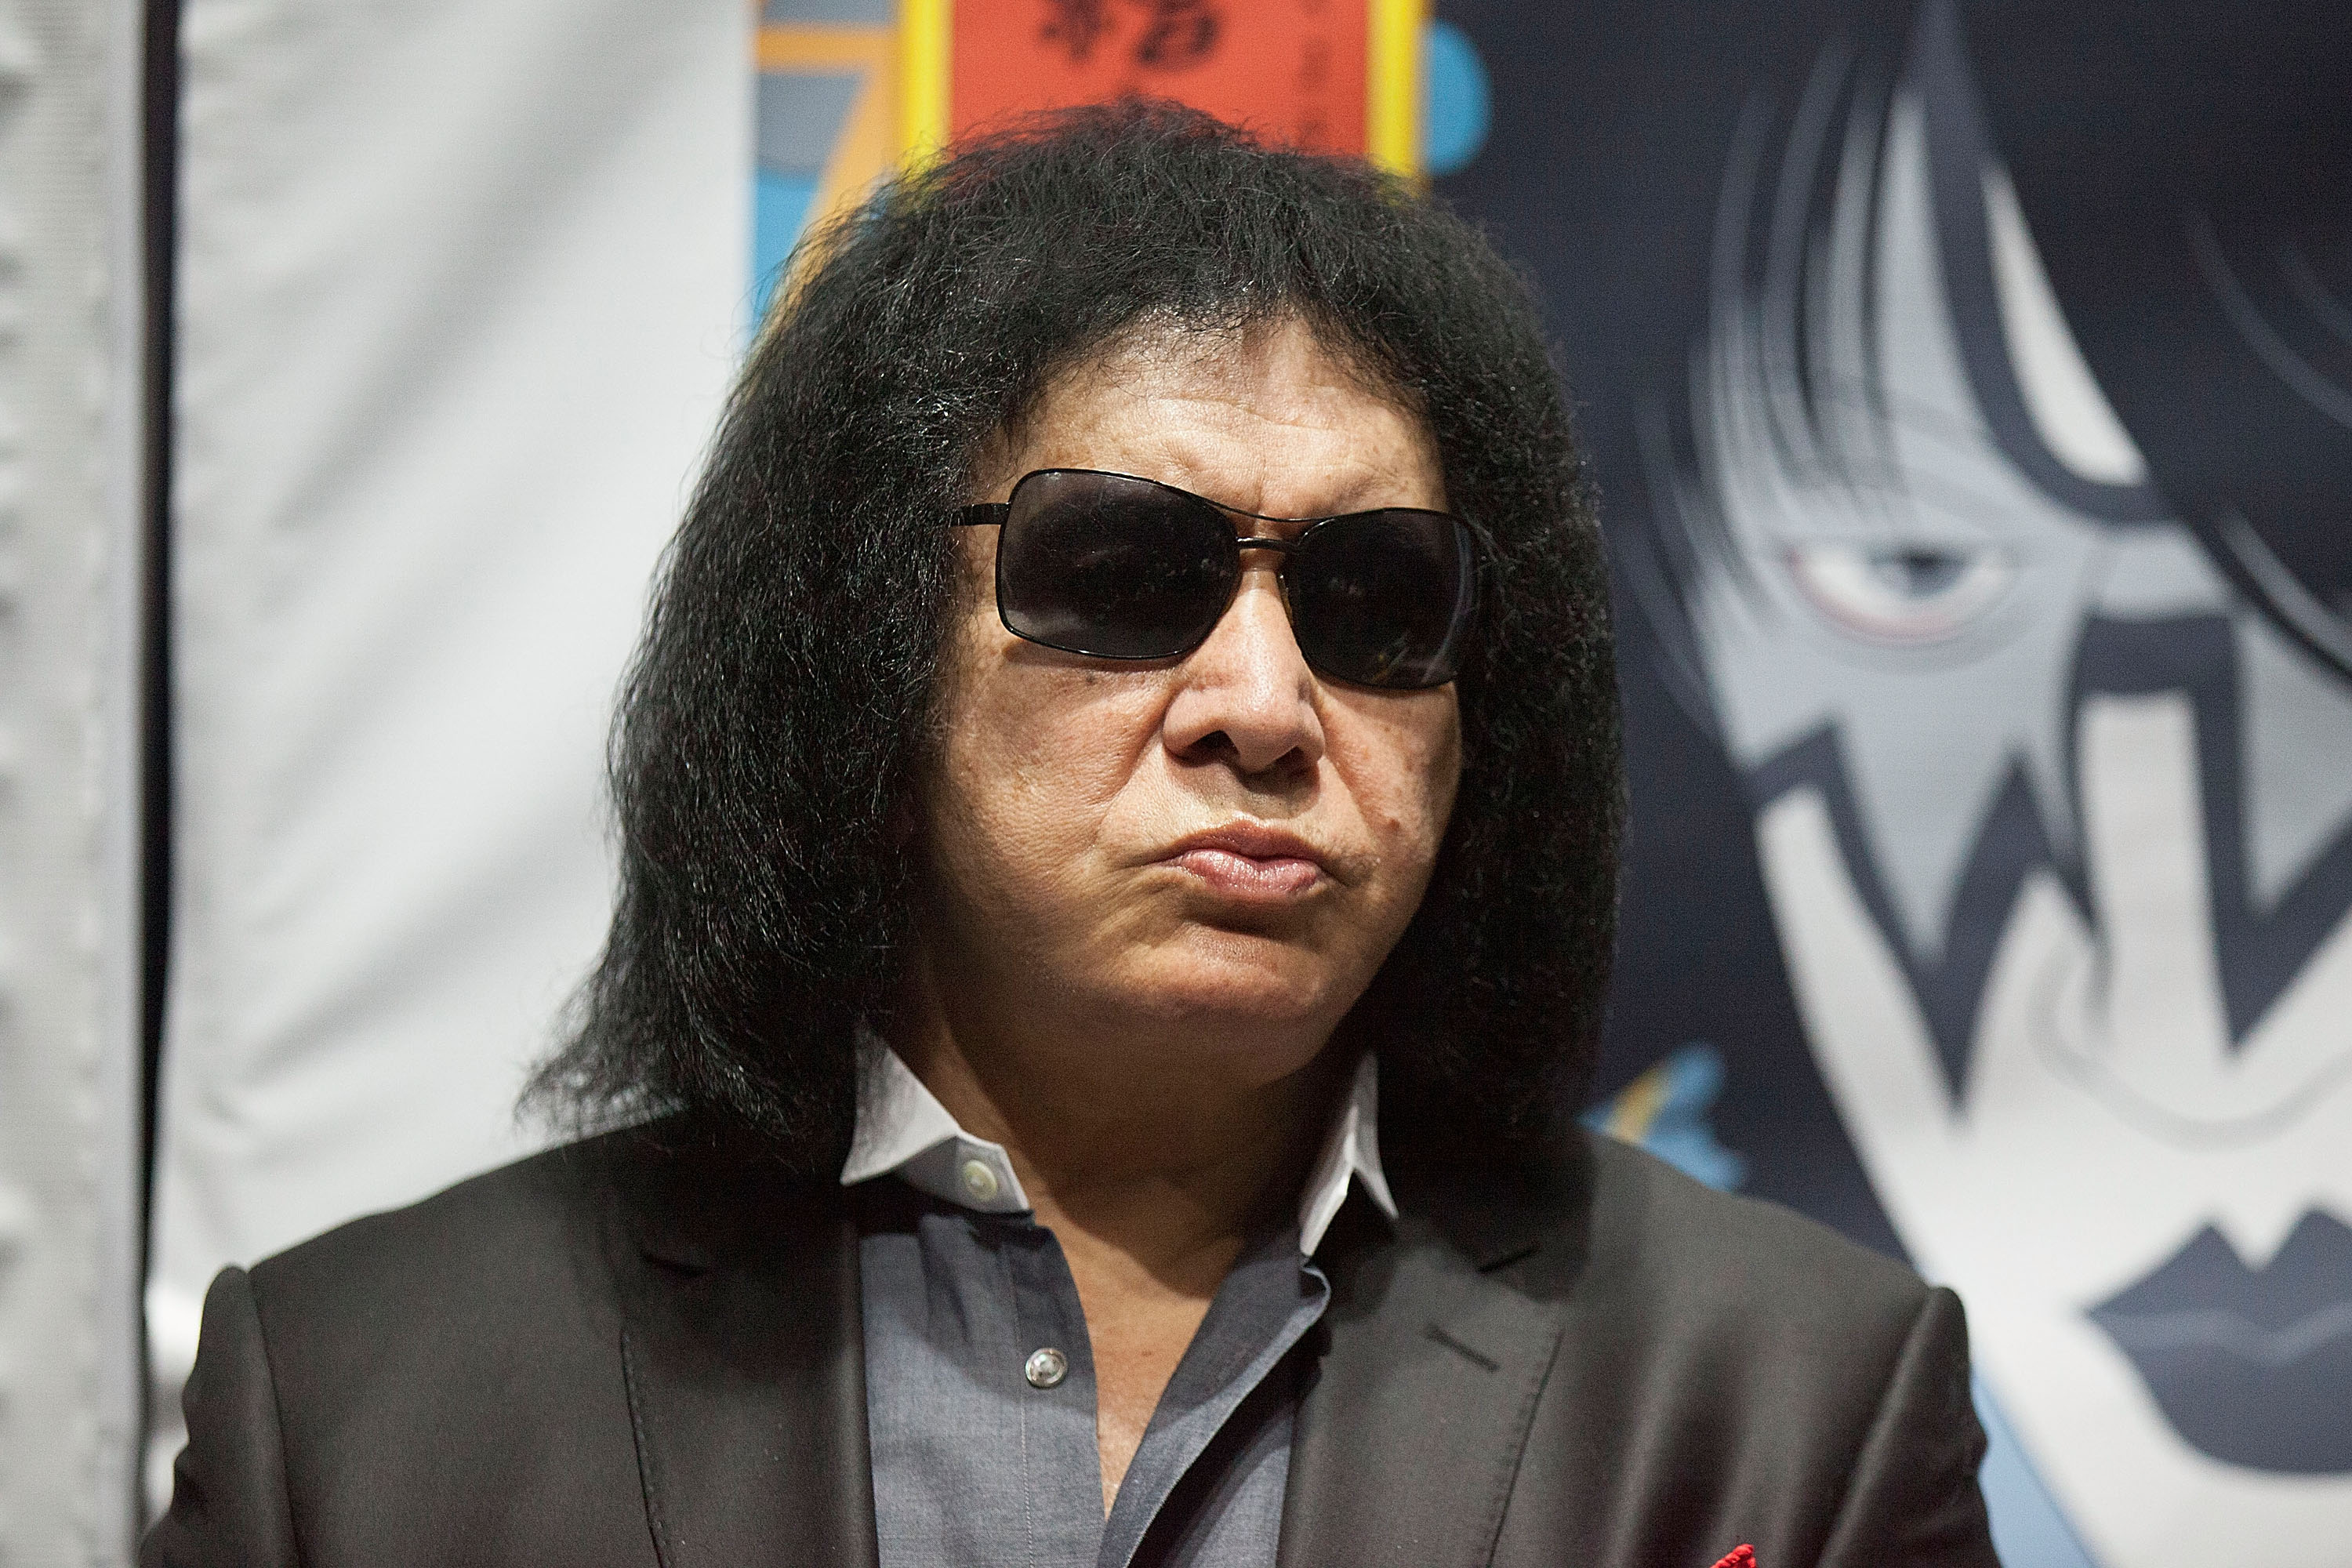 LOS ANGELES, CA - JULY 02: Gene Simmons attends the press conference and concert hosted by KISS members Gene Simmons and Paul